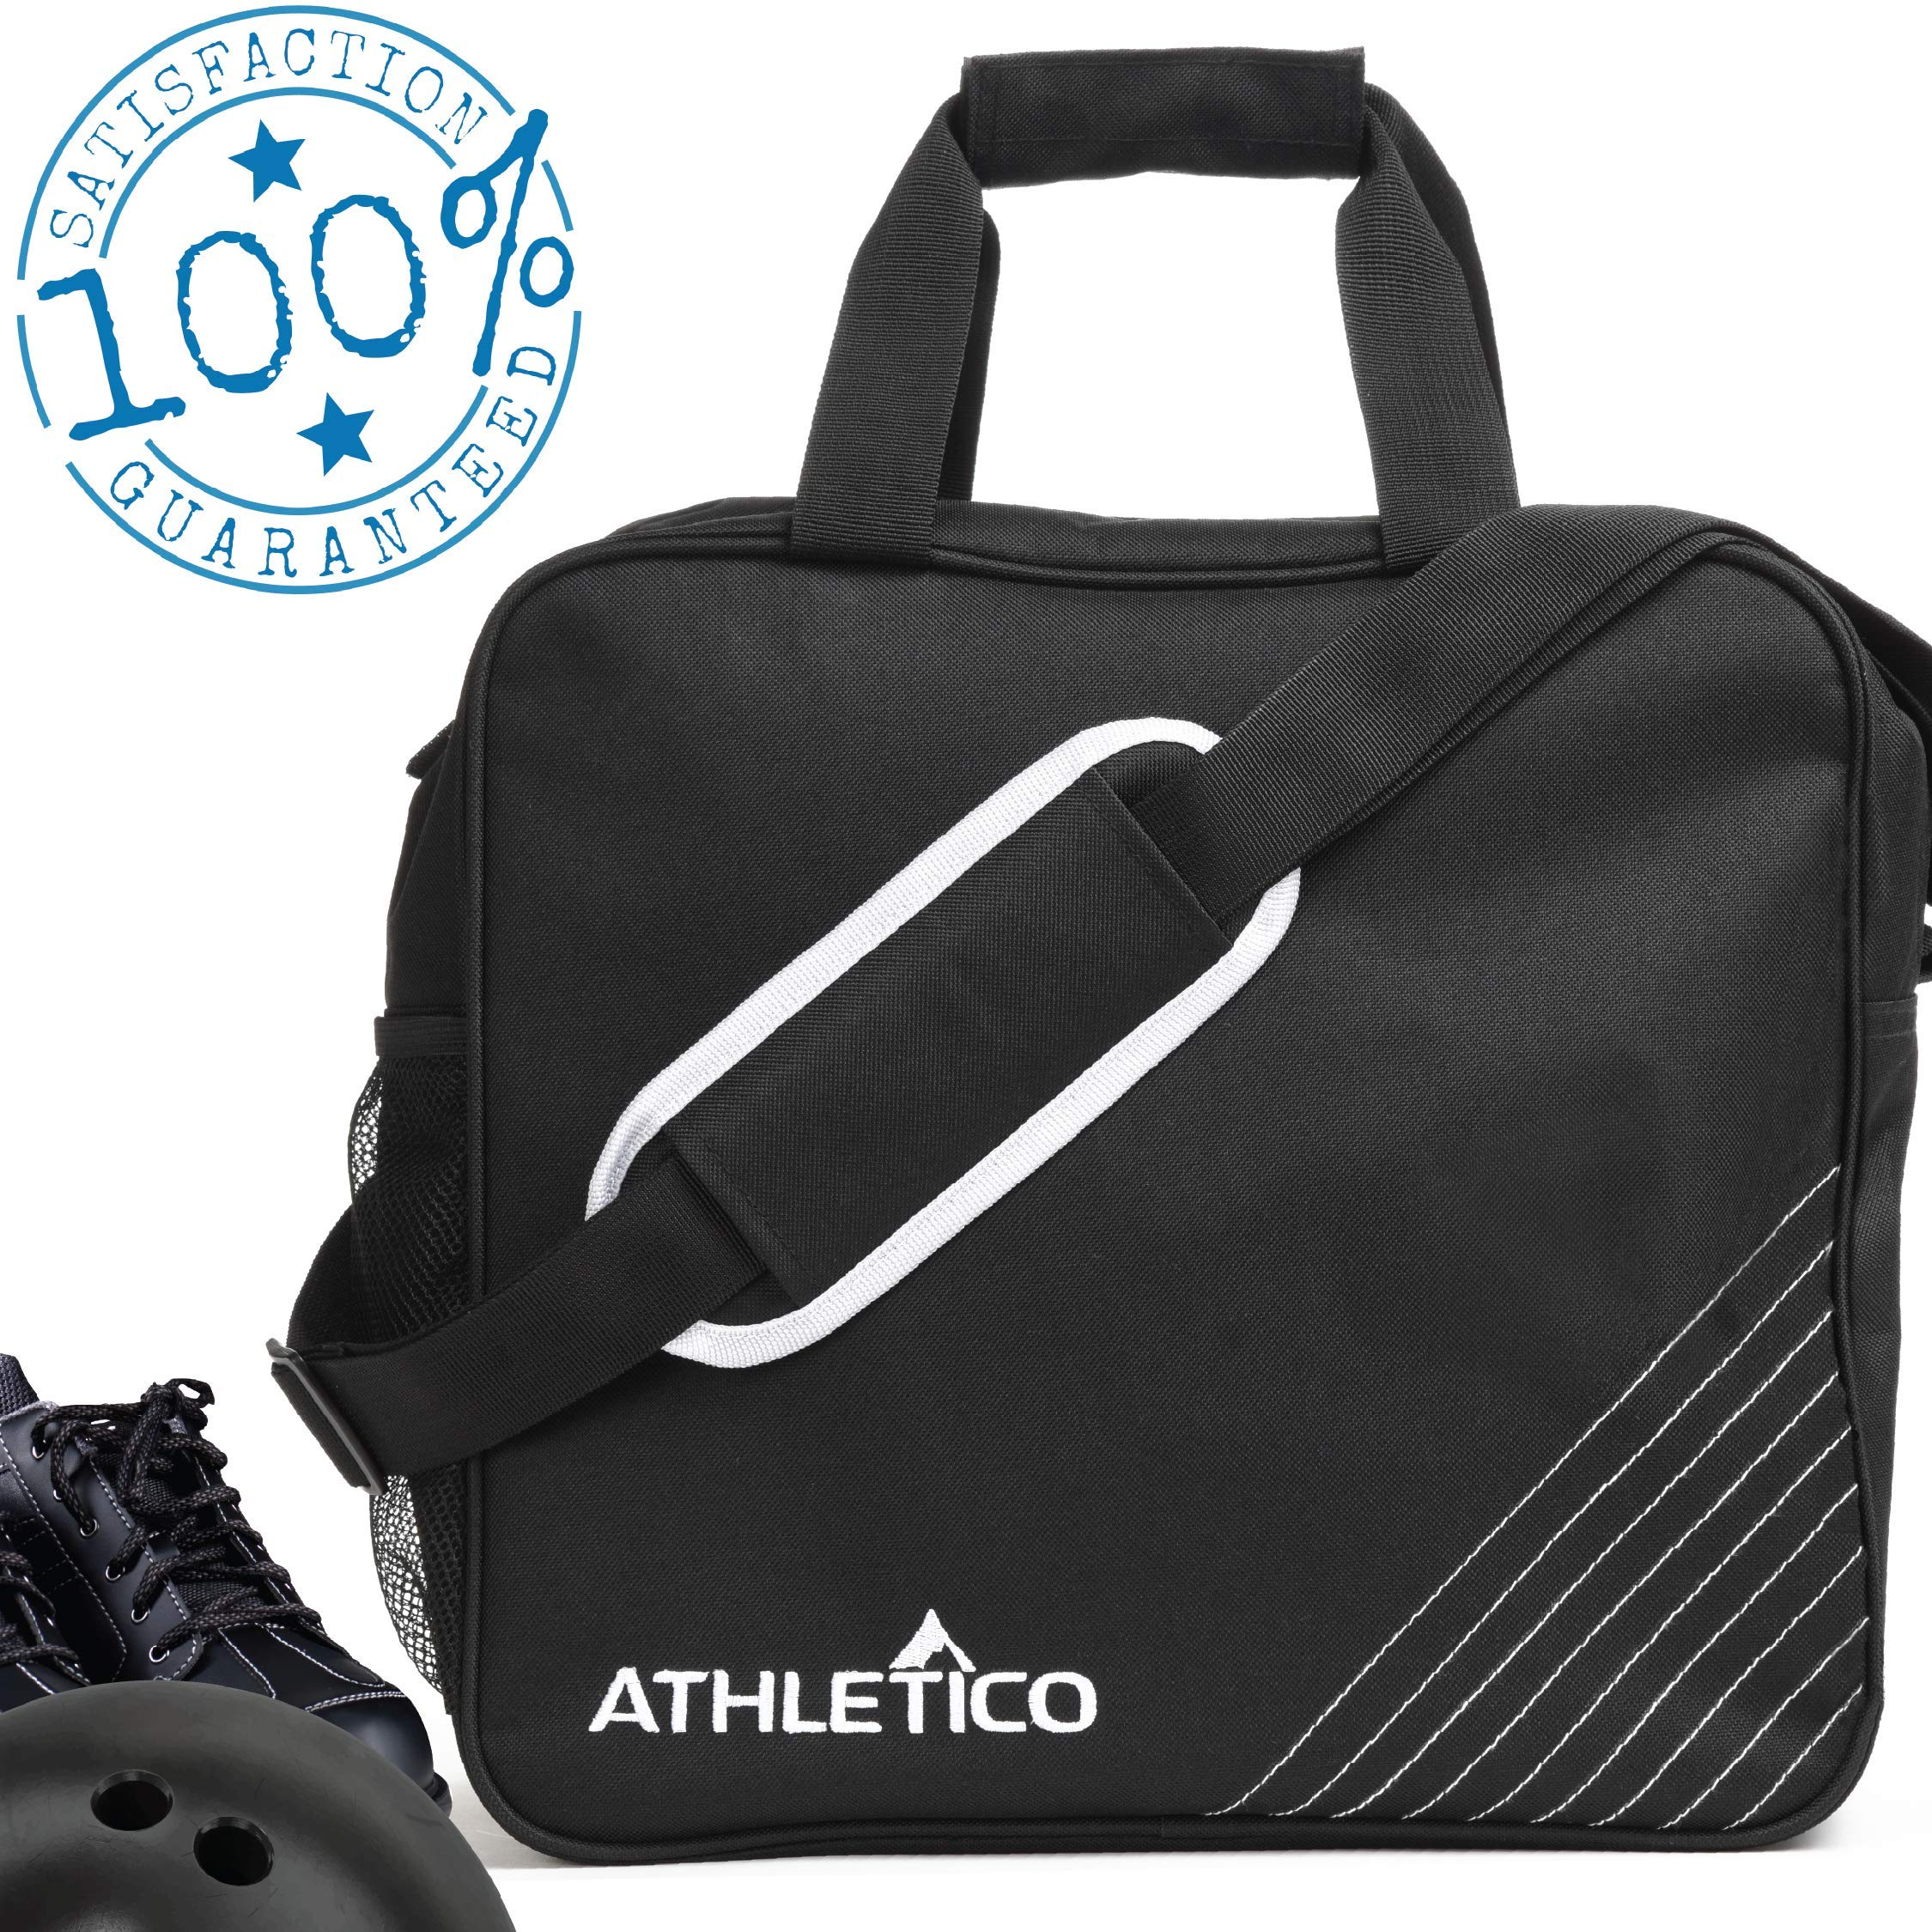 Athletico Essential Bowling Bag - Single Ball Bowling Tote Bag with Padded Bowling Ball Holder (Black) by Athletico